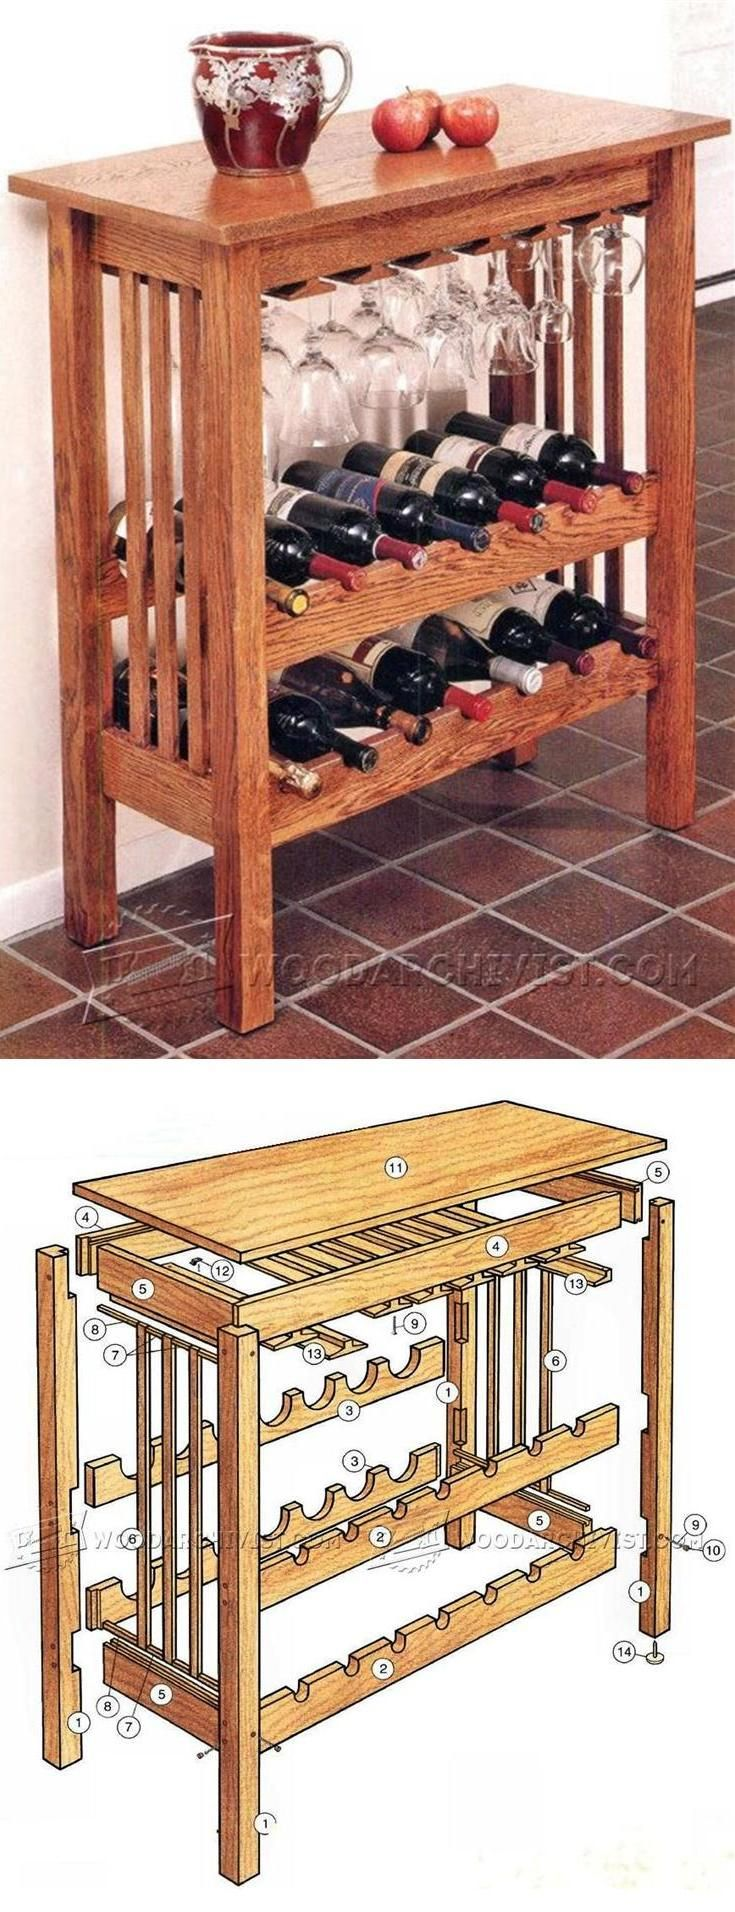 Wine Rack Table Plans - Furniture Plans and Projects | WoodArchivist.com